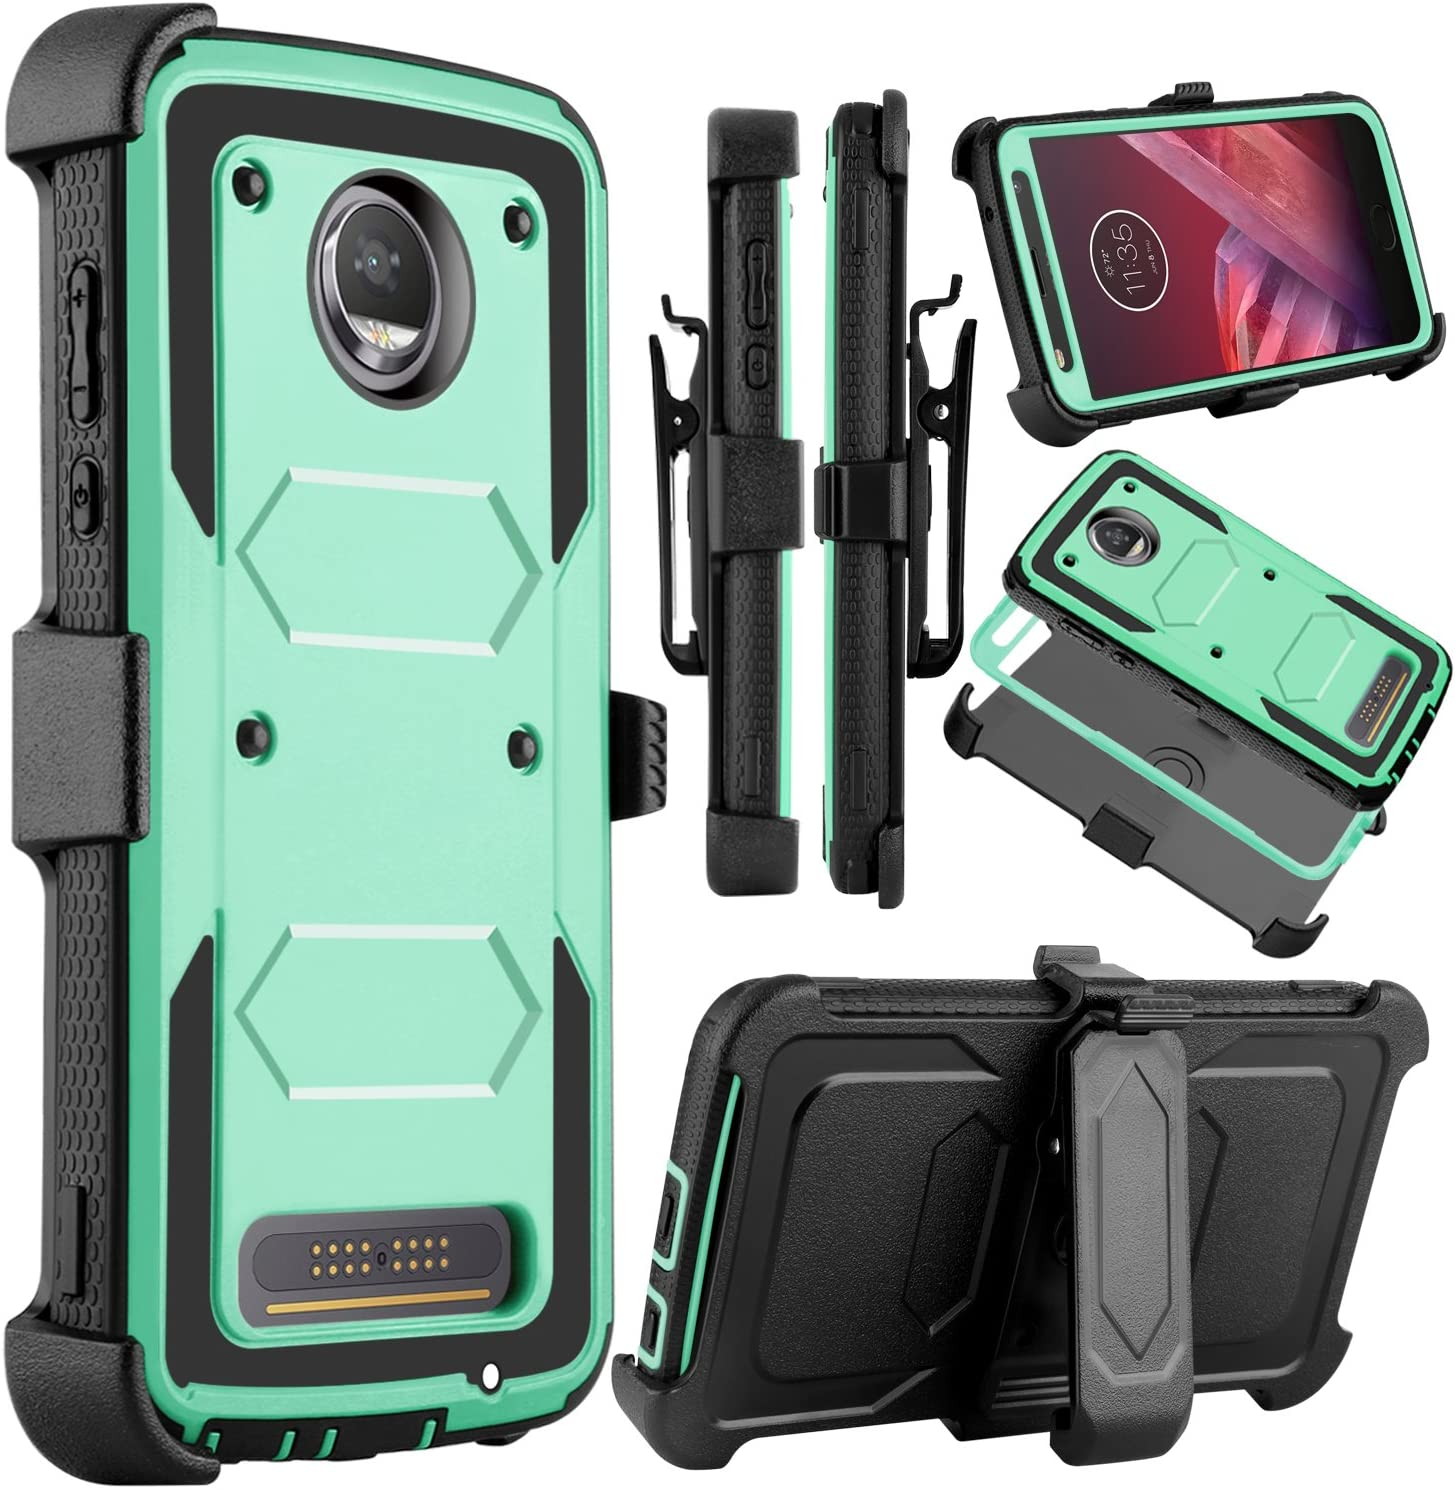 Venoro Moto Z2 Force Case, Moto Z2 Play Case, Heavy Duty Shockproof Full Body Protection Rugged Hybrid Case Cover with Swivel Belt Clip and Kickstand for Motorola Z Force 2017 (Natural)